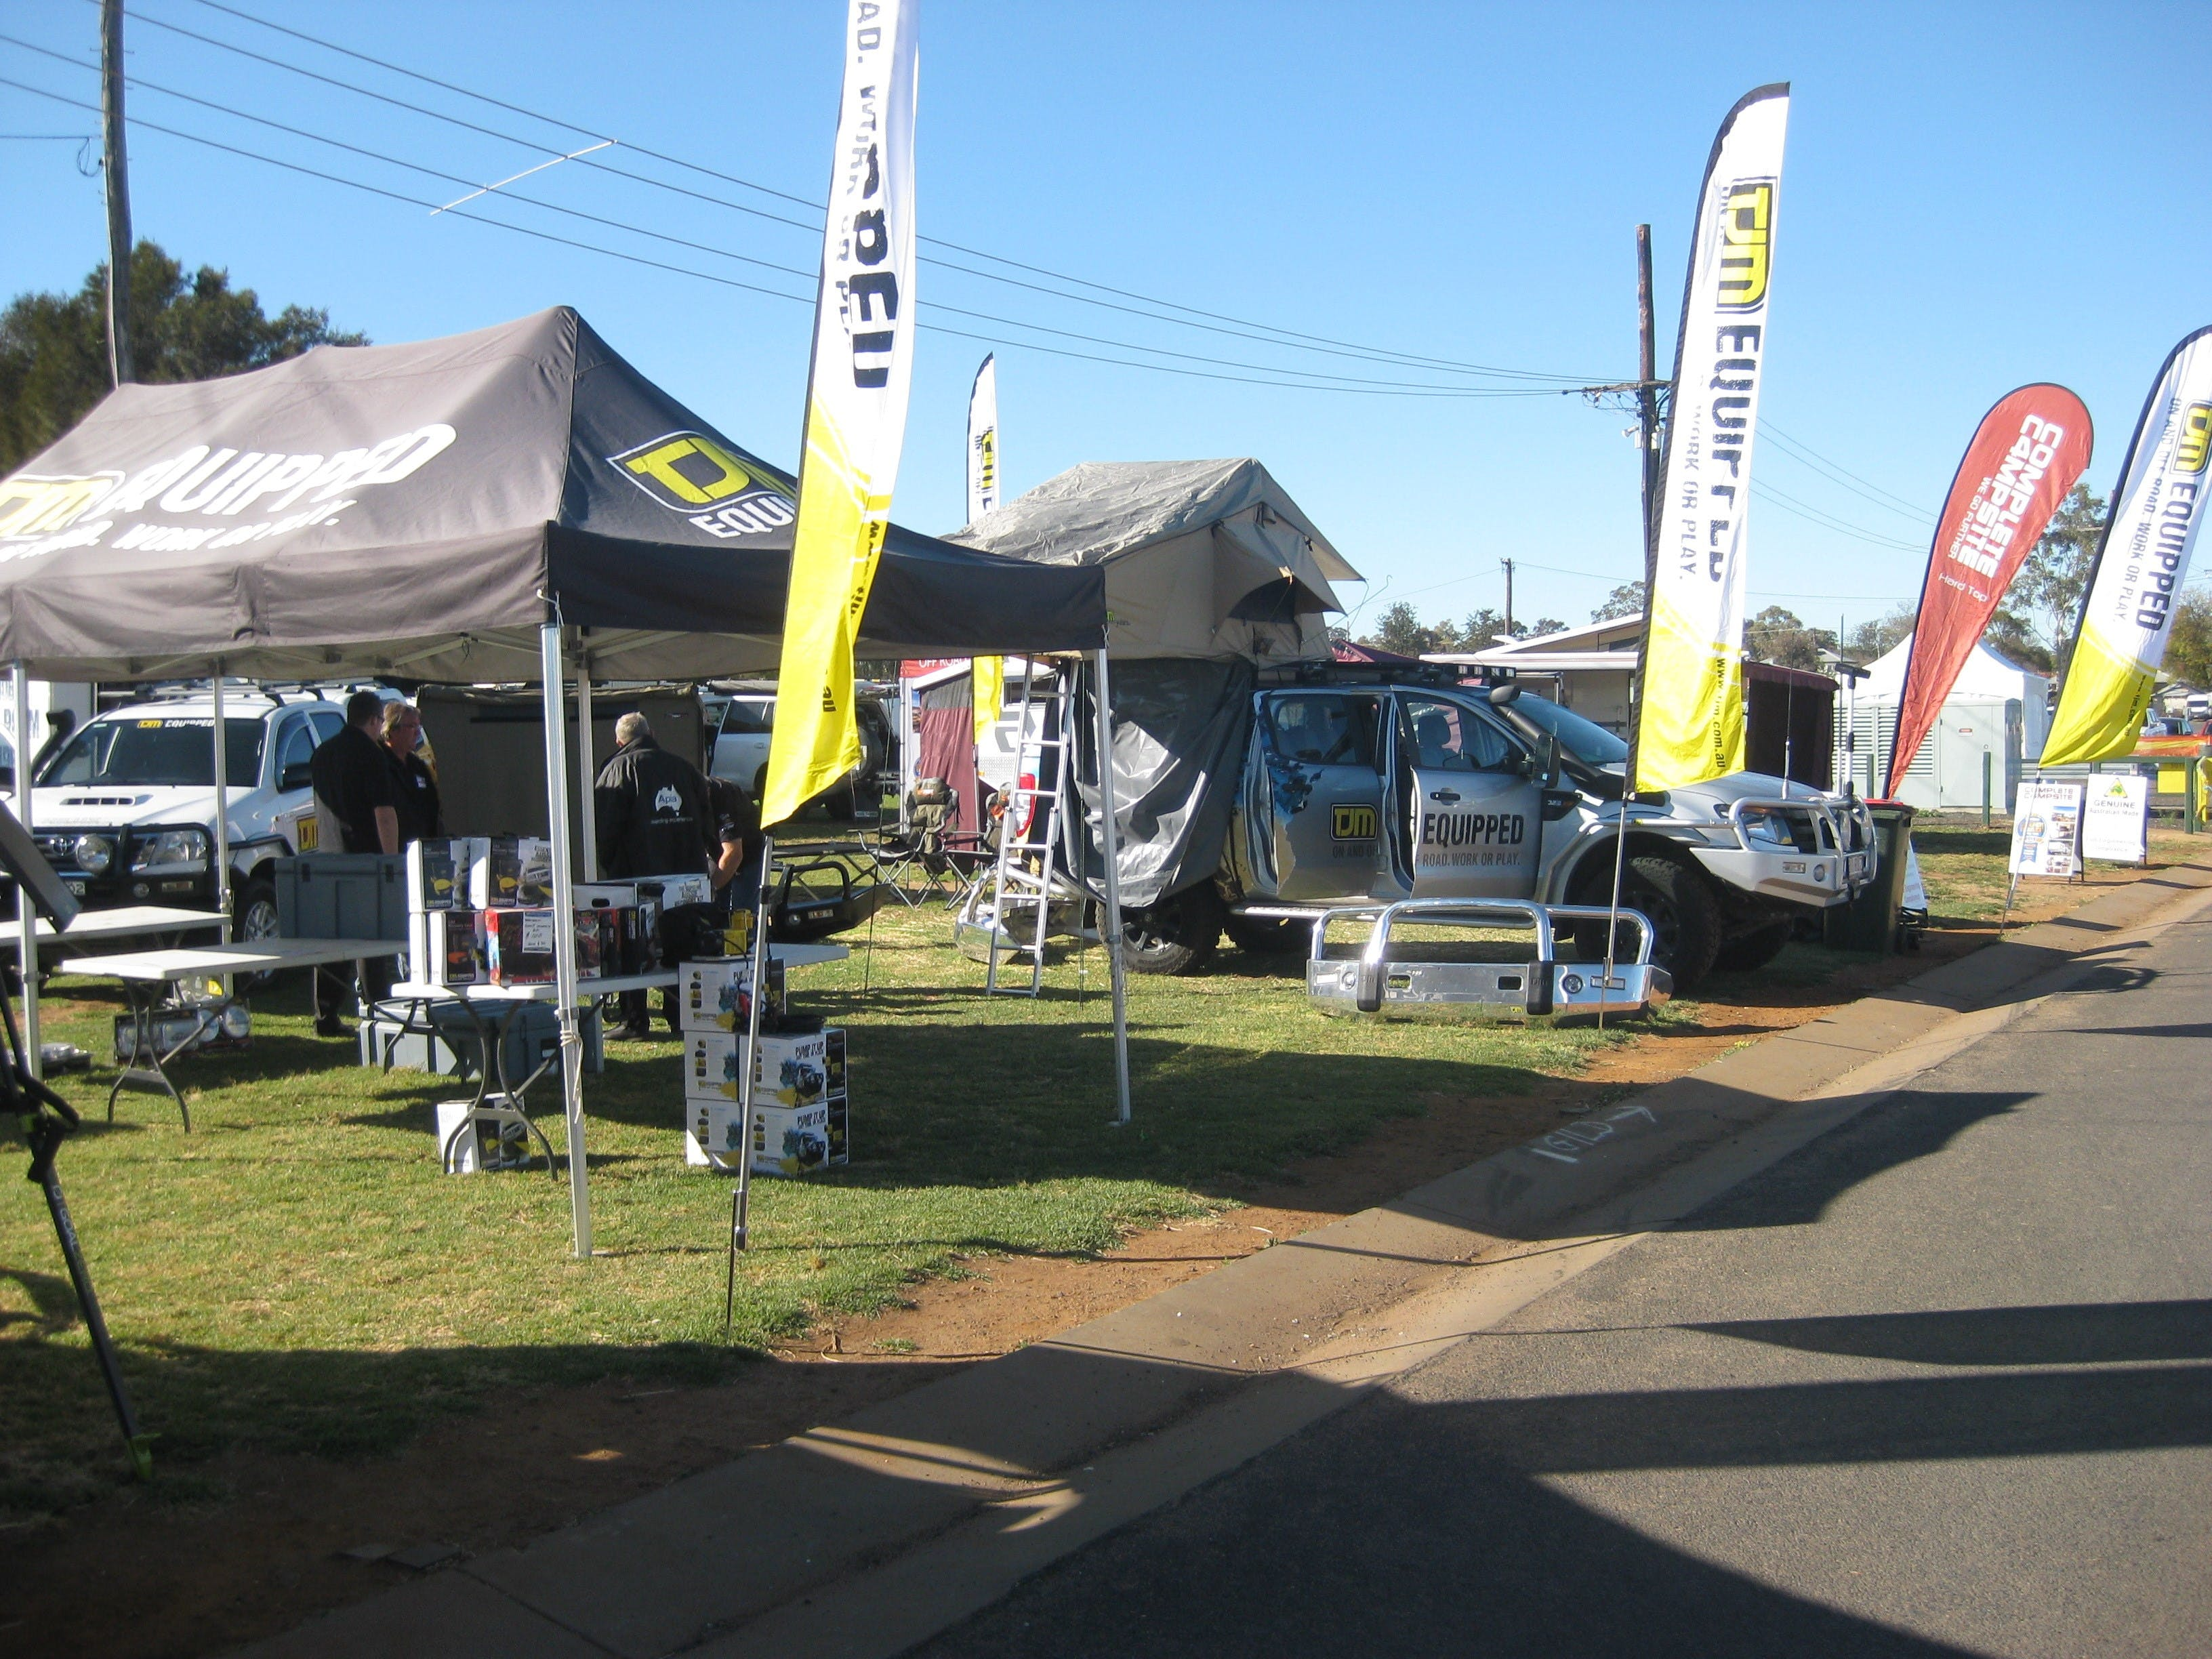 Orana Caravan Camping 4WD Fish and Boat Show - Newcastle Accommodation